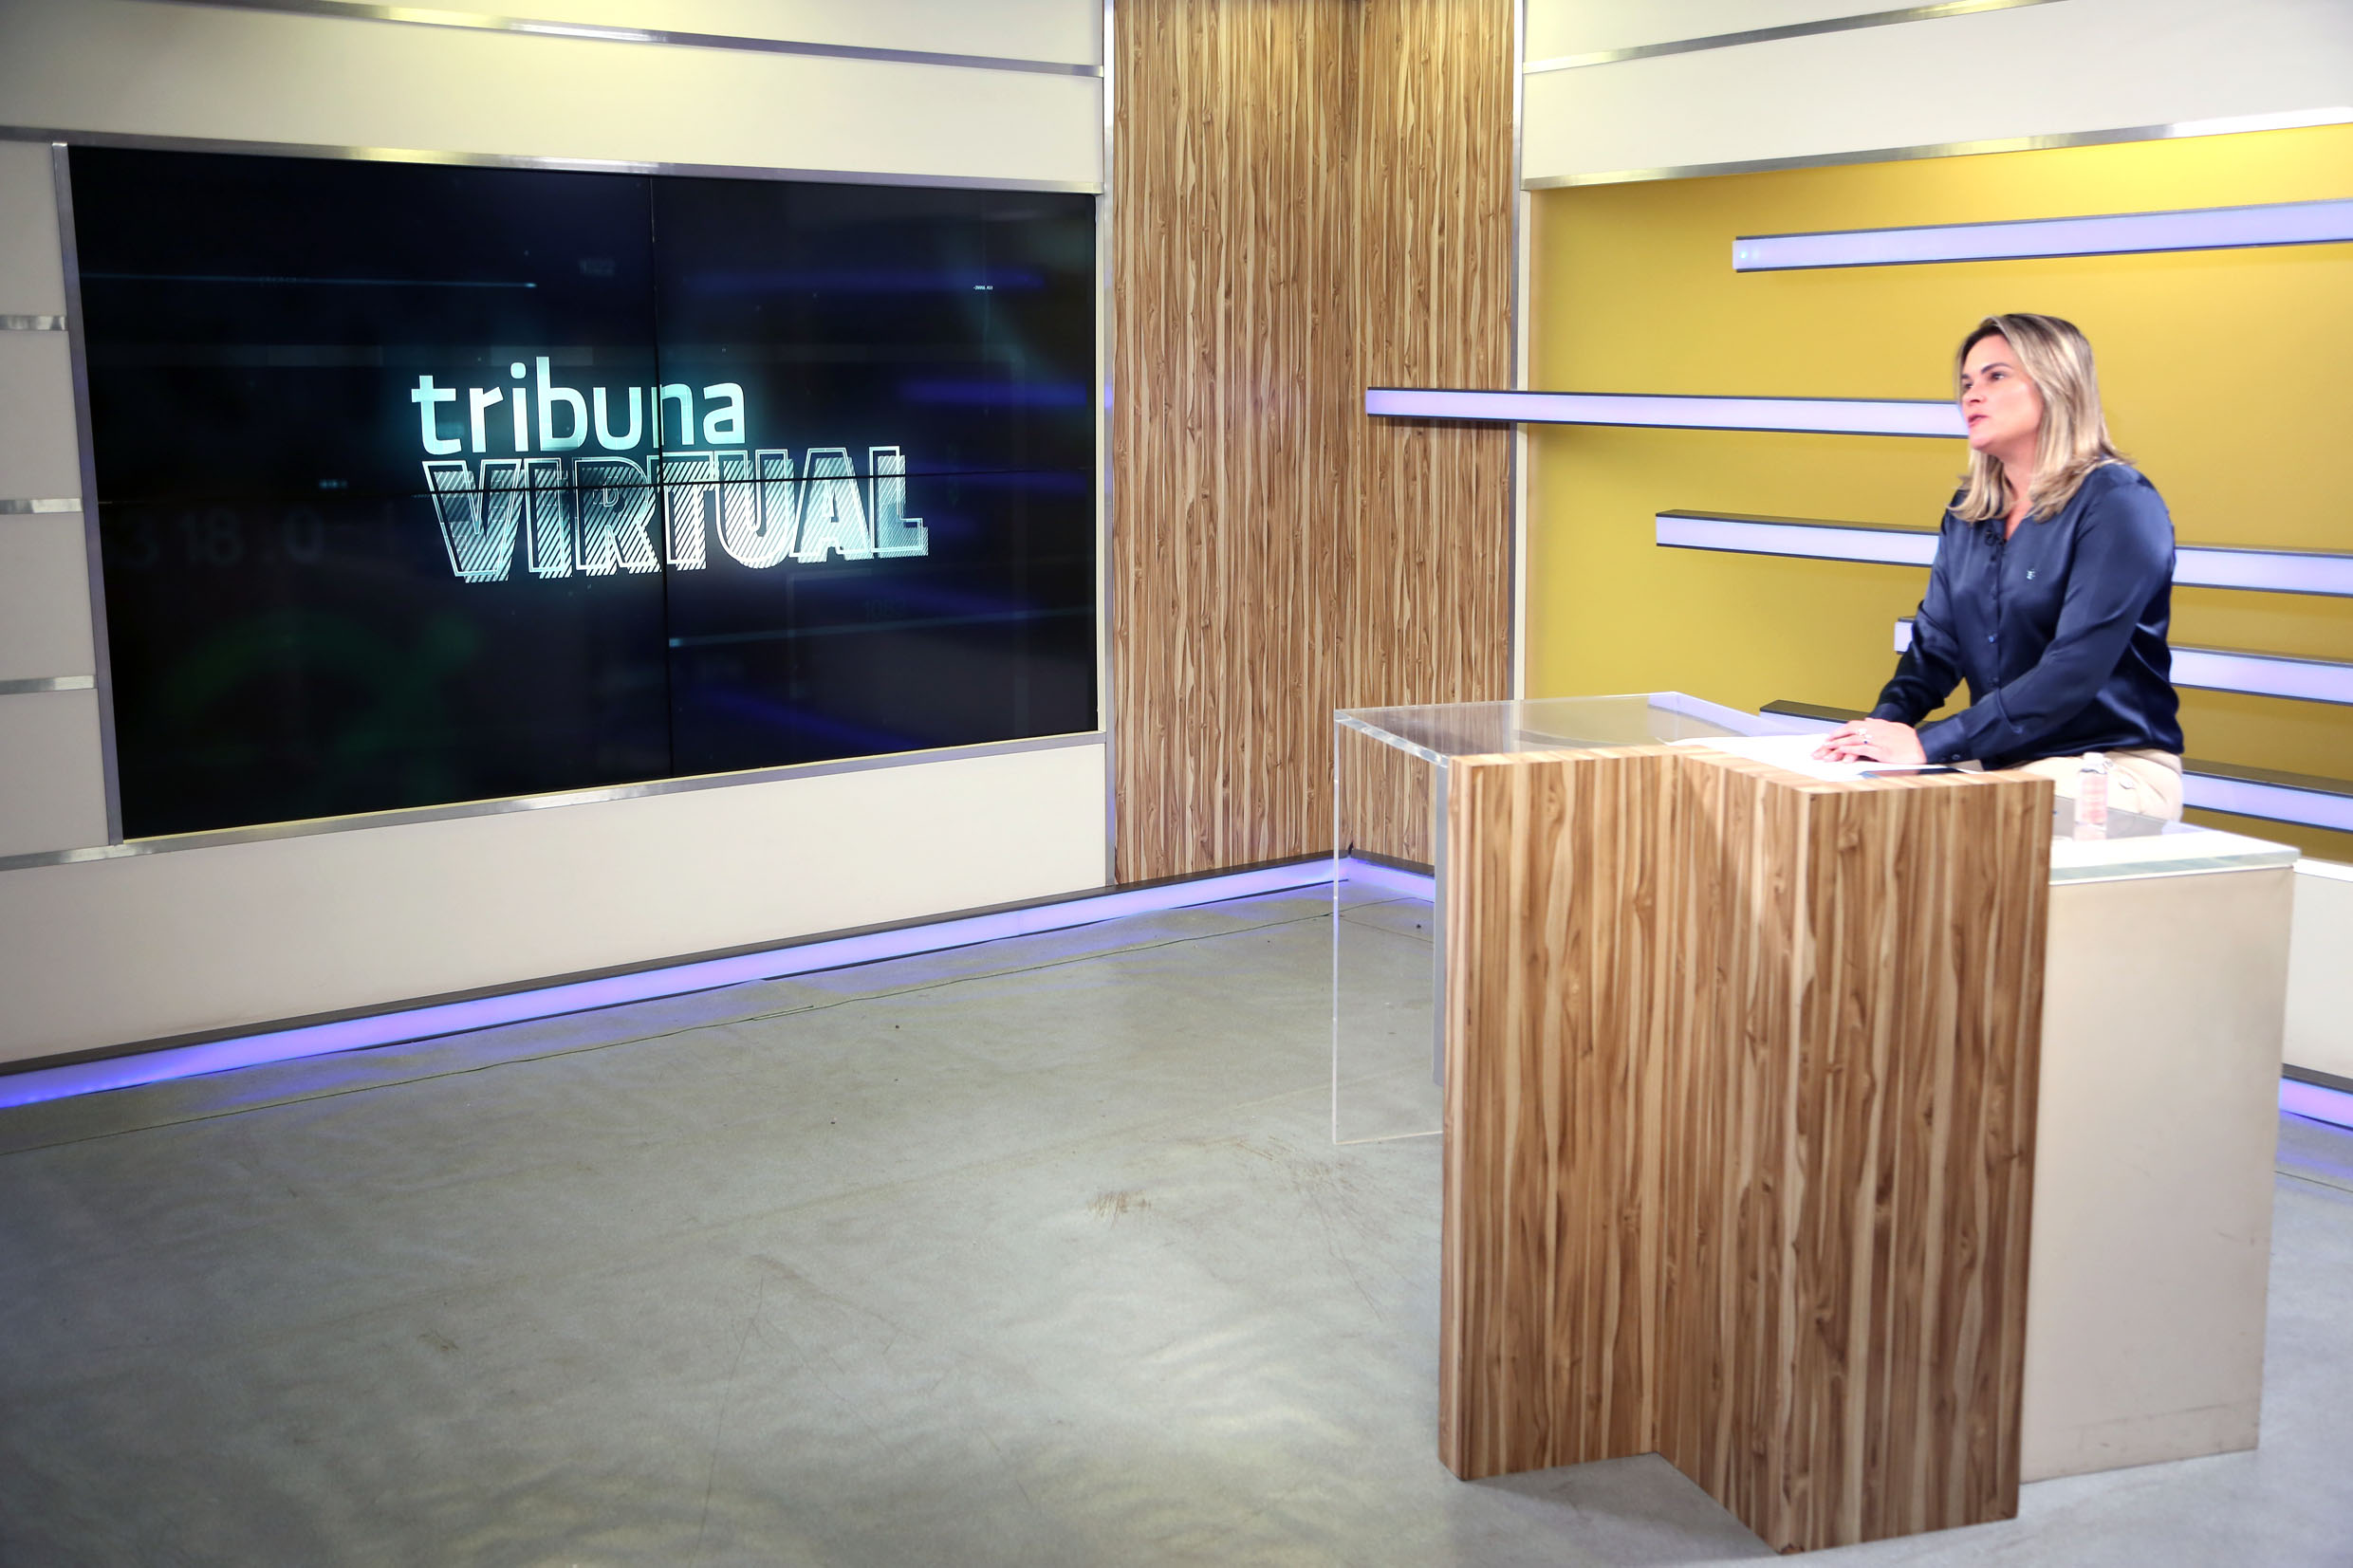 Tribuna Virtual<a style='float:right' href='https://www3.al.sp.gov.br/repositorio/noticia/N-06-2020/fg249503.jpg' target=_blank><img src='/_img/material-file-download-white.png' width='14px' alt='Clique para baixar a imagem'></a>